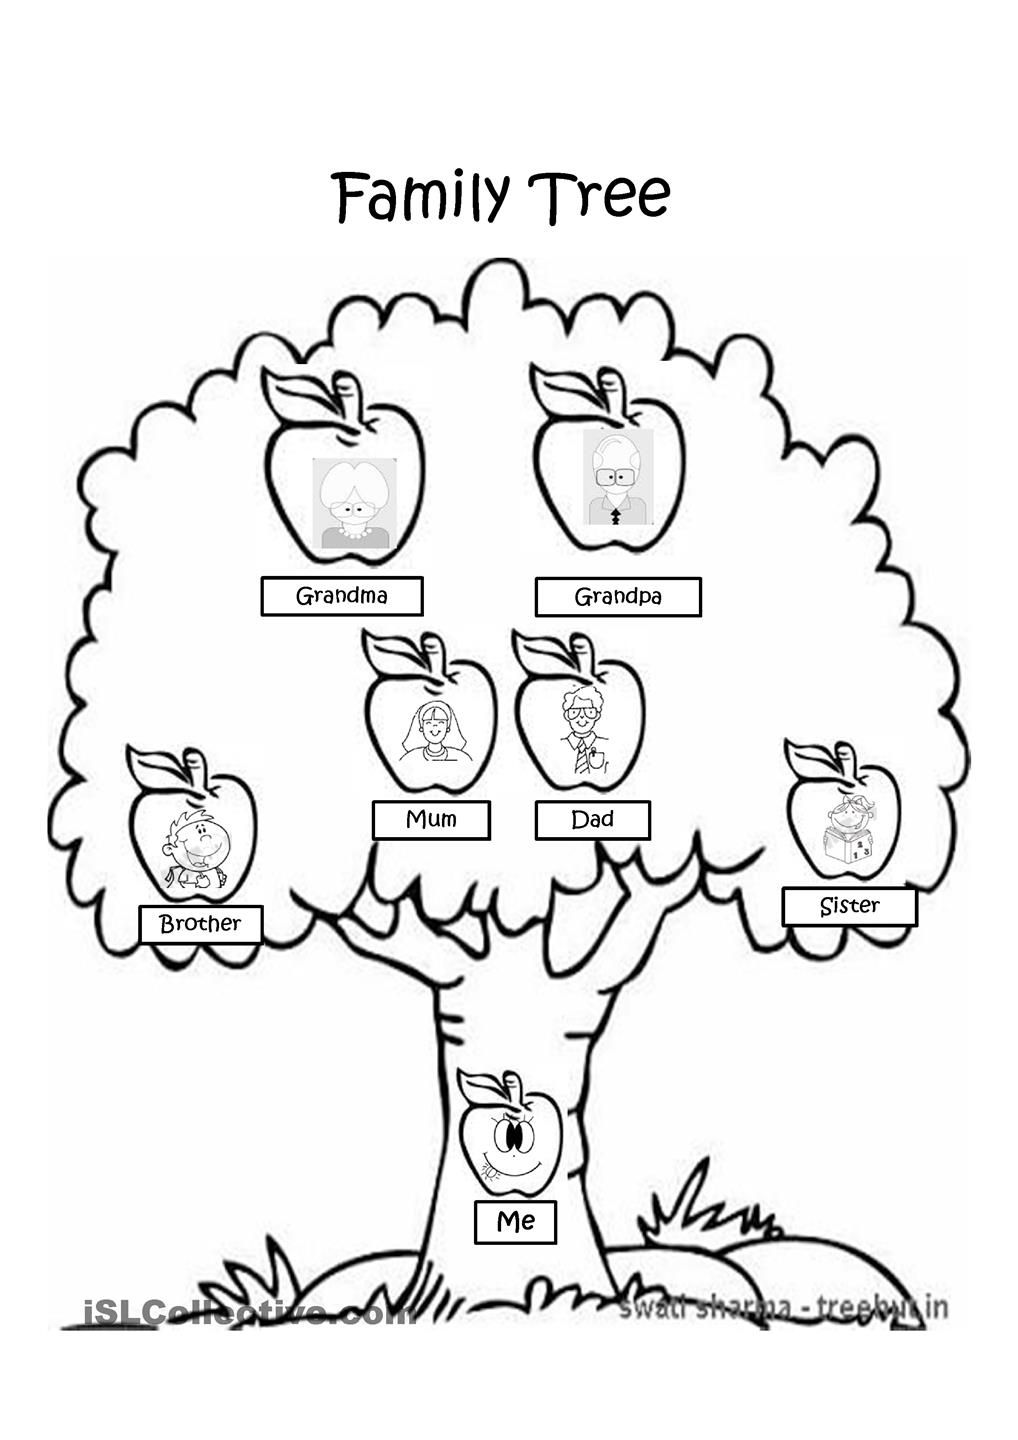 Family Tree Clipart Black And White.